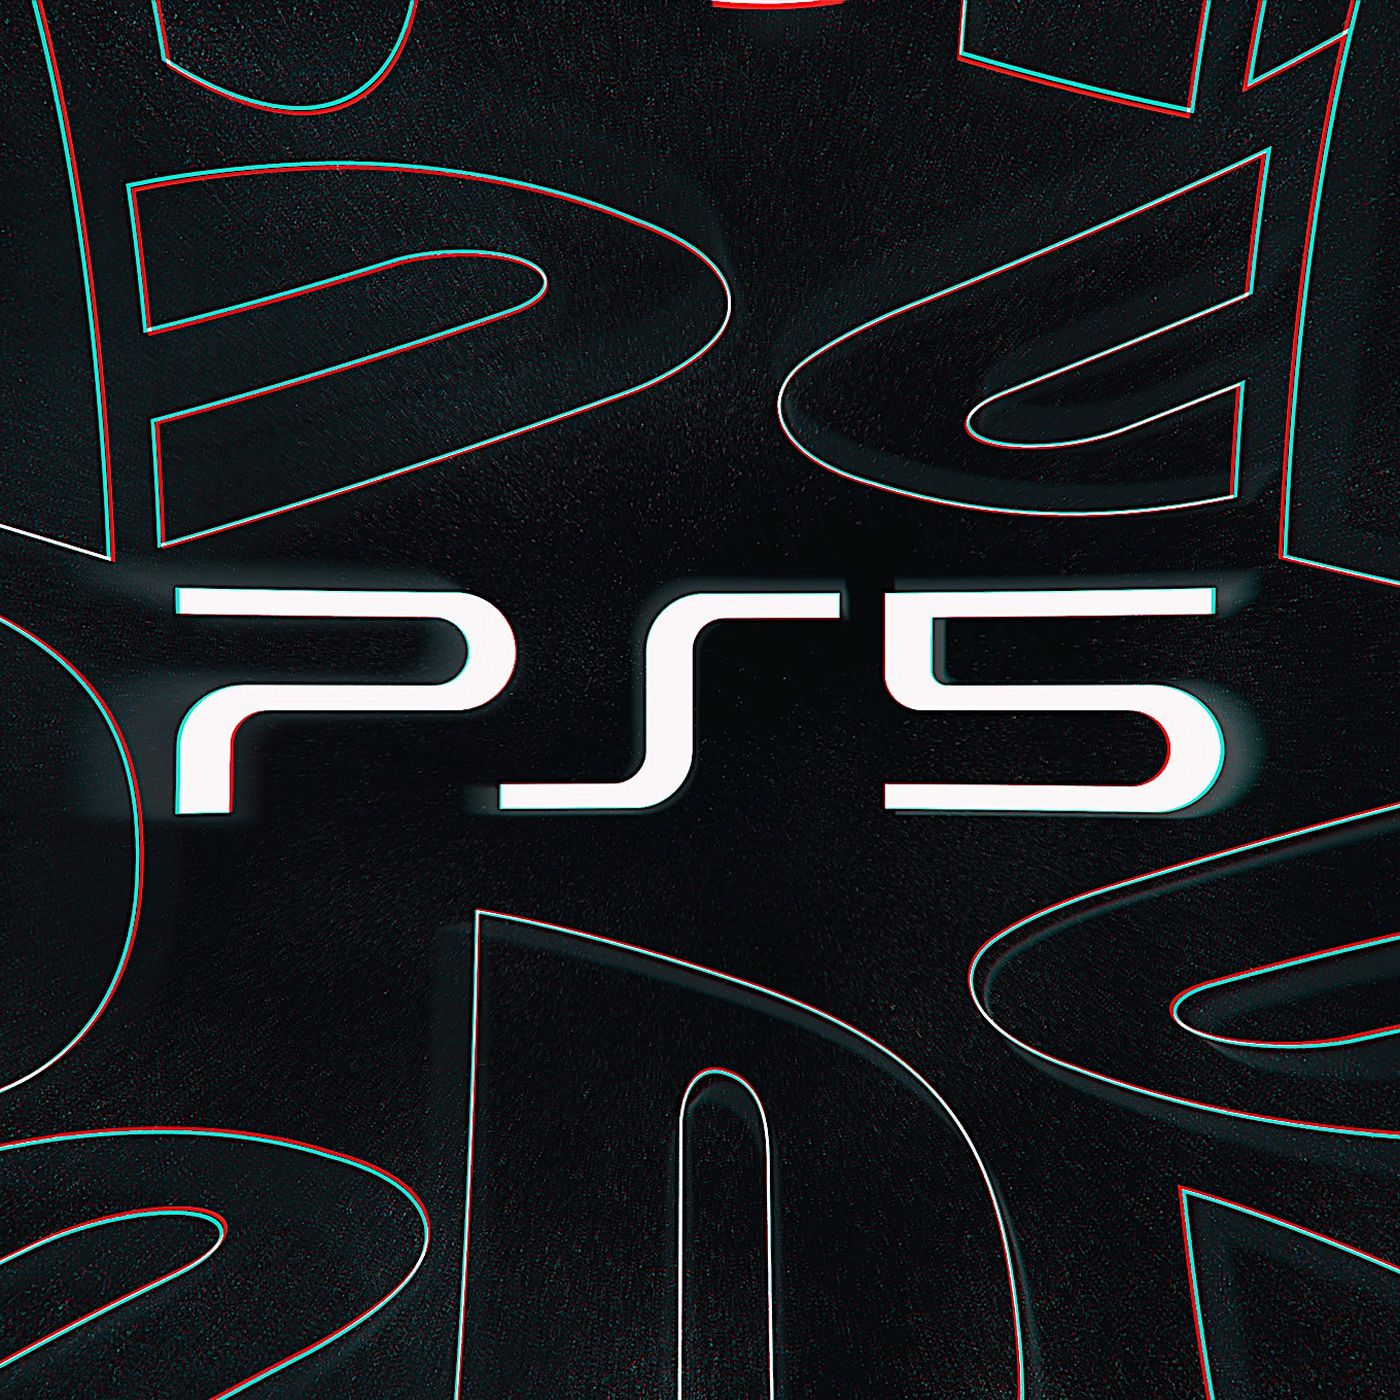 Epic Ceo Tim Sweeney Says The Ps5 Is So Impressive It S Going To Help Drive Future Pcs The Verge